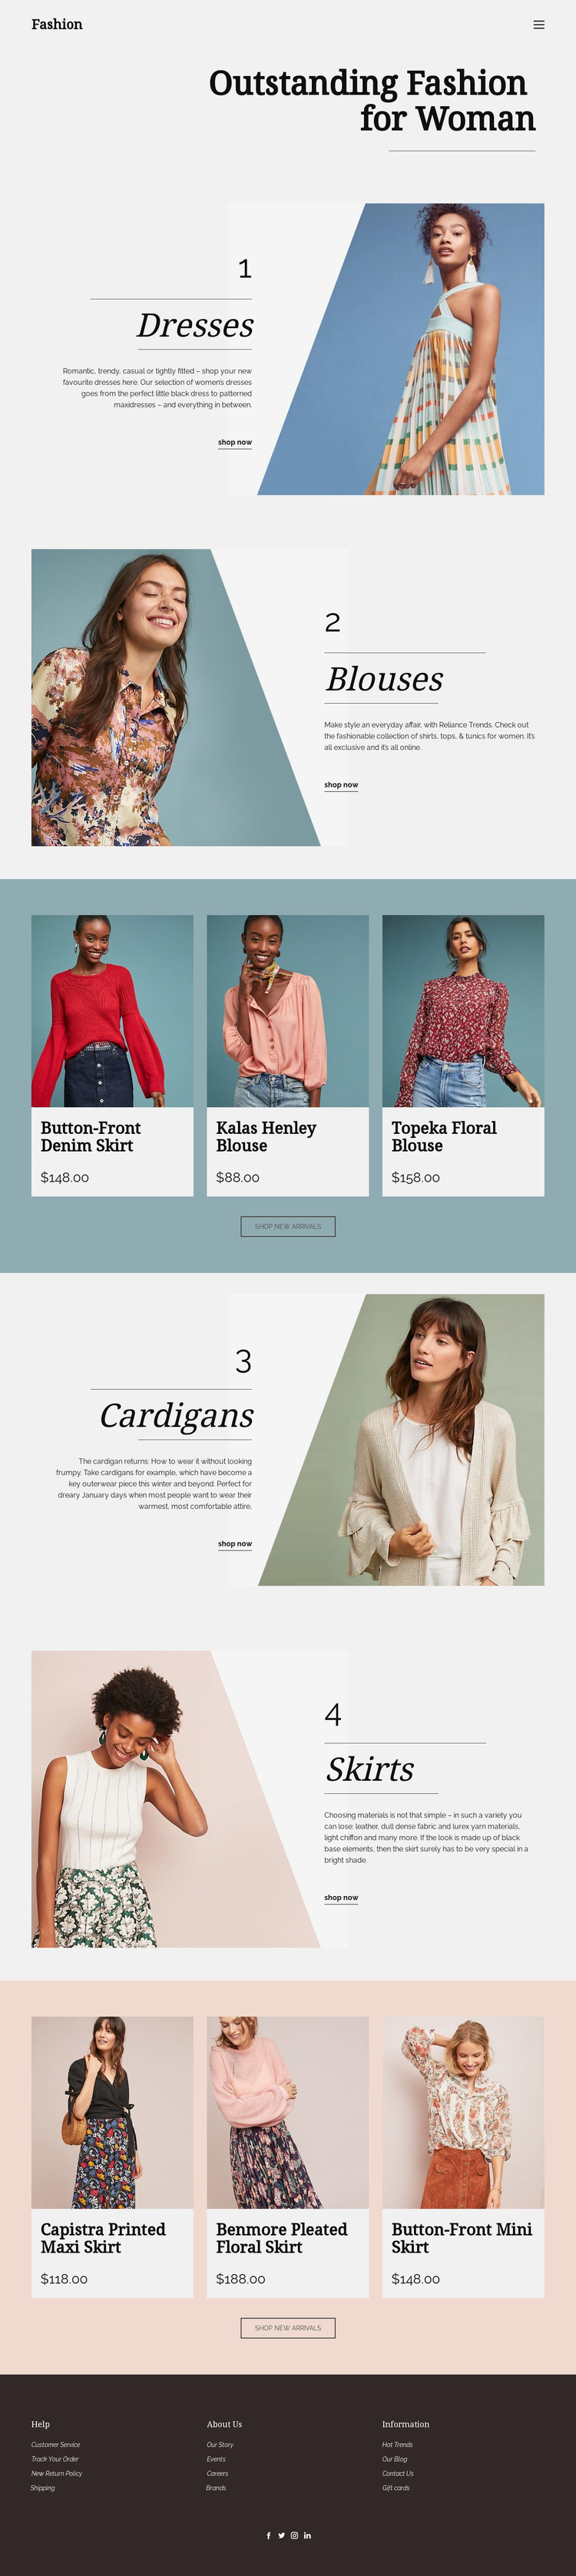 Fashion for Woman Website Builder